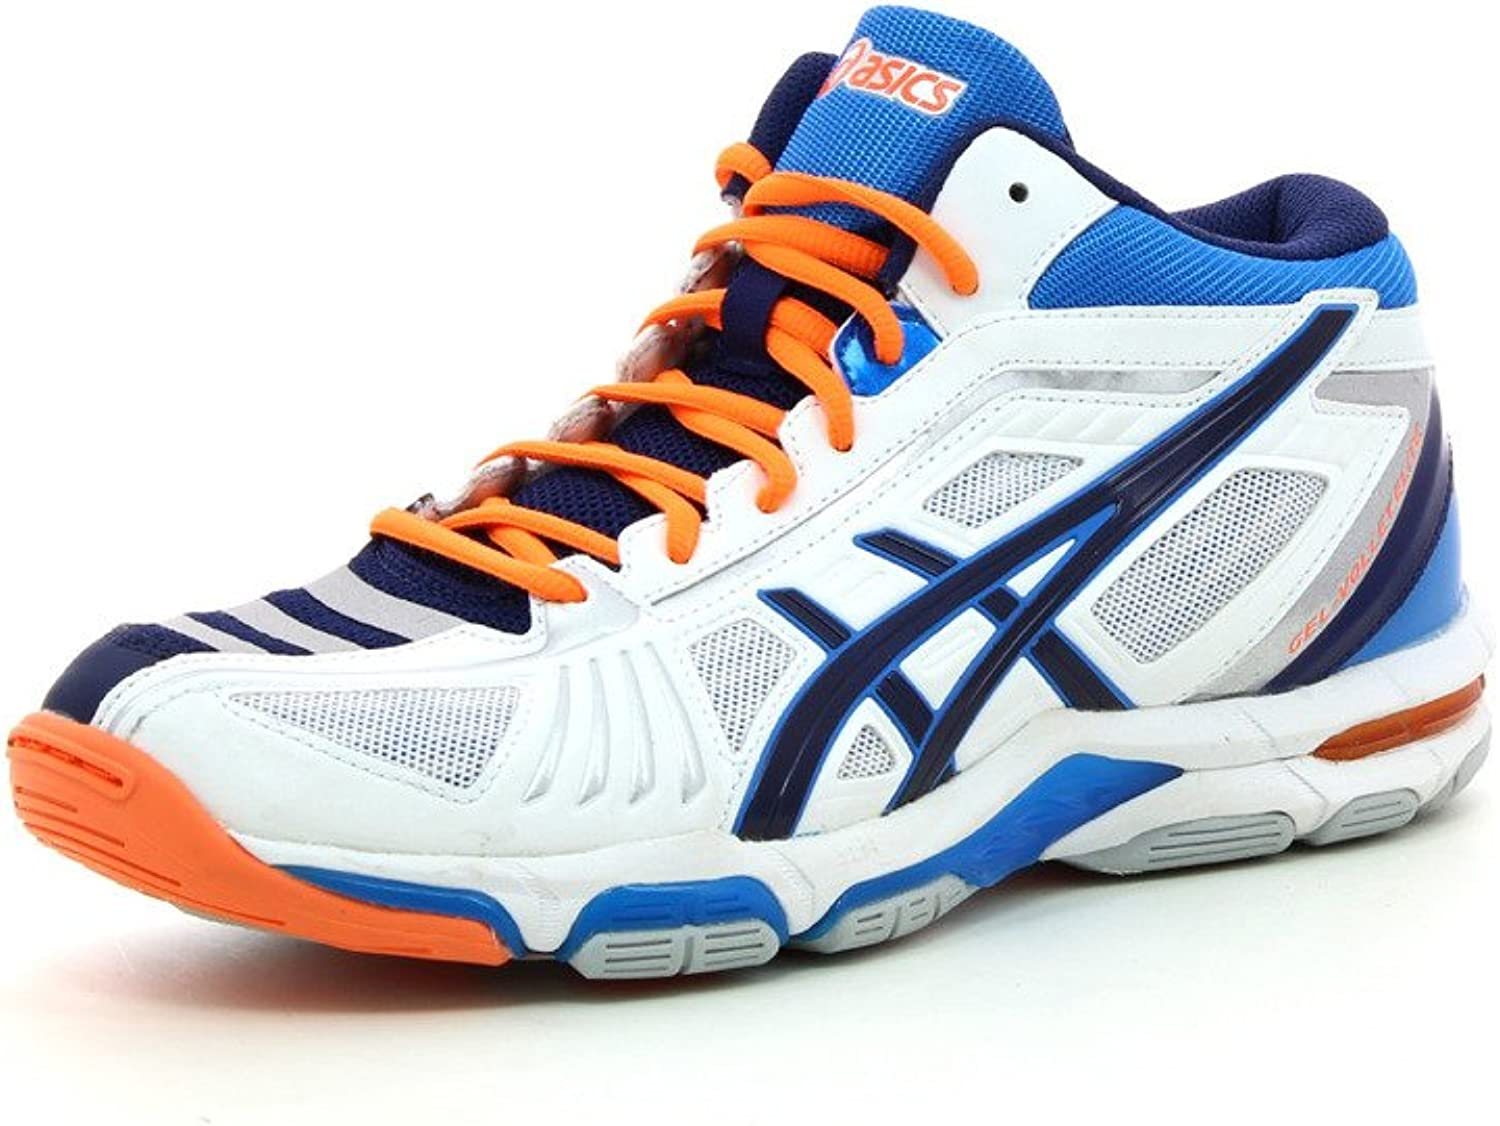 Asics Gel-Volley Elite 2 MT Volleyballschuh Herren 15.0 US - 50.5 EU